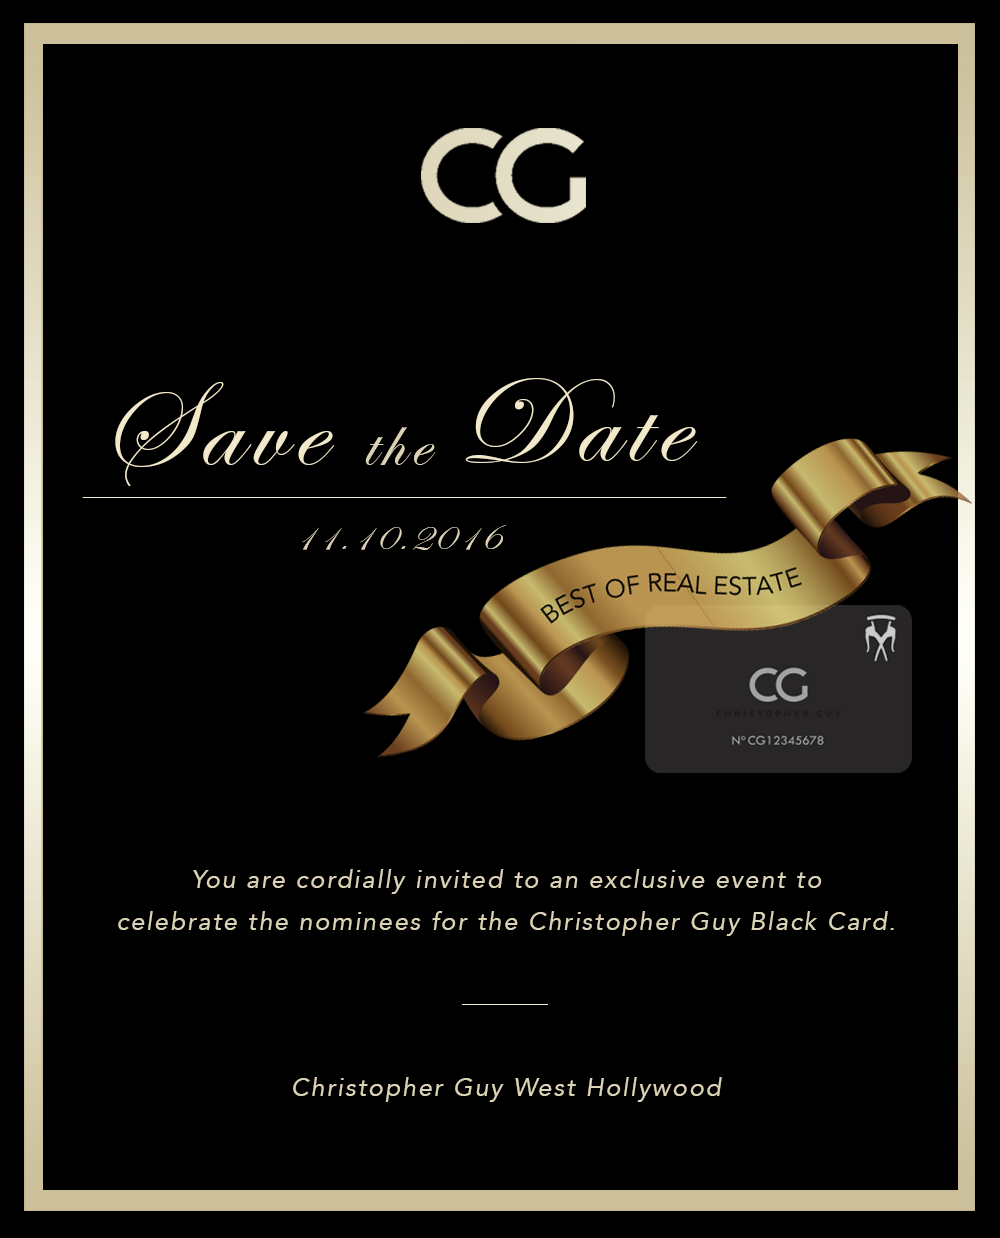 CGBlackCardLaunch_SavetheDateR1.png